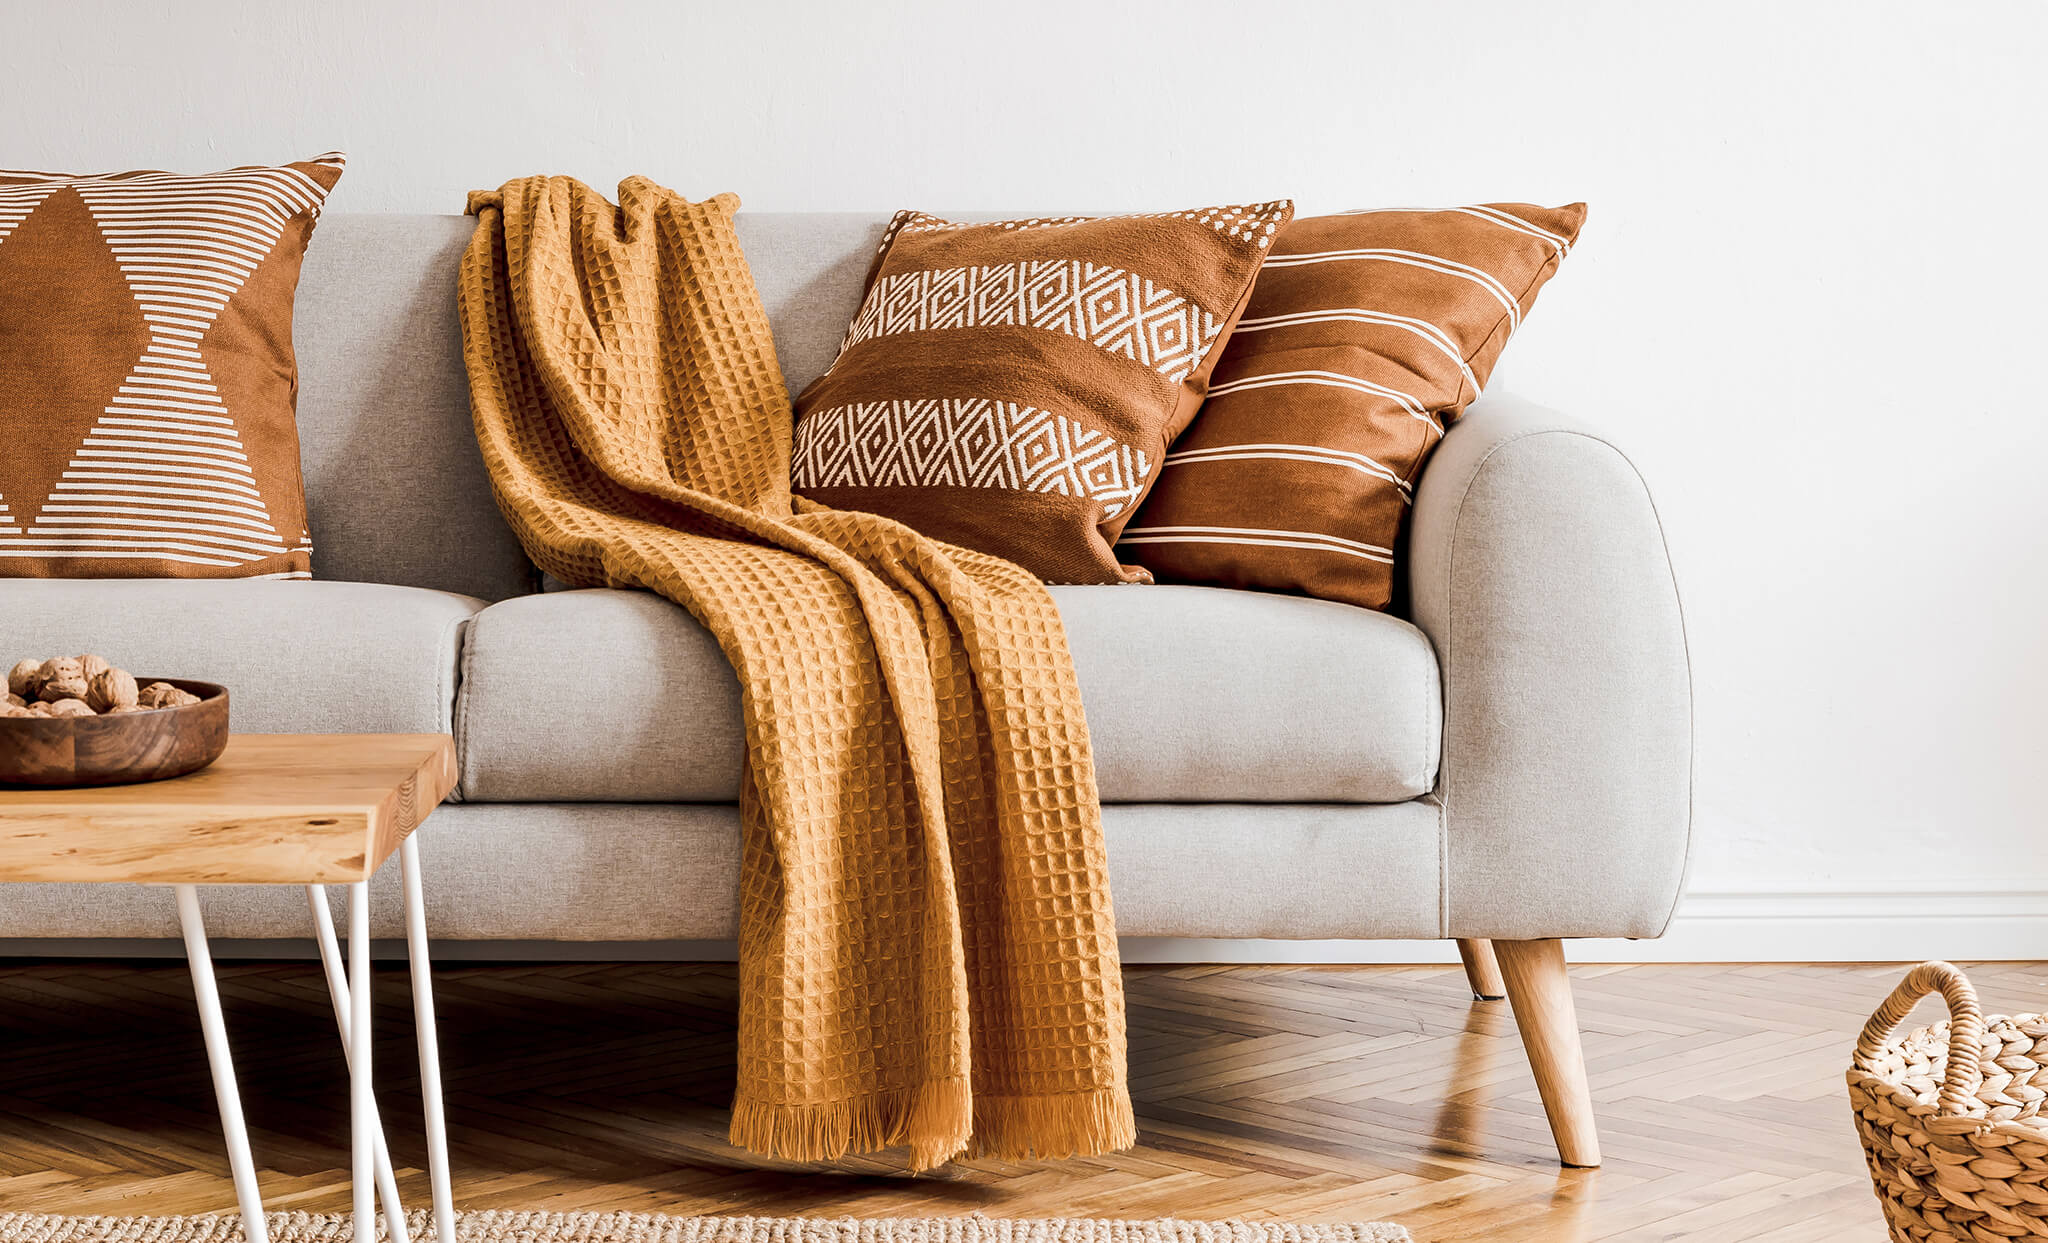 Boho Couch Pillows